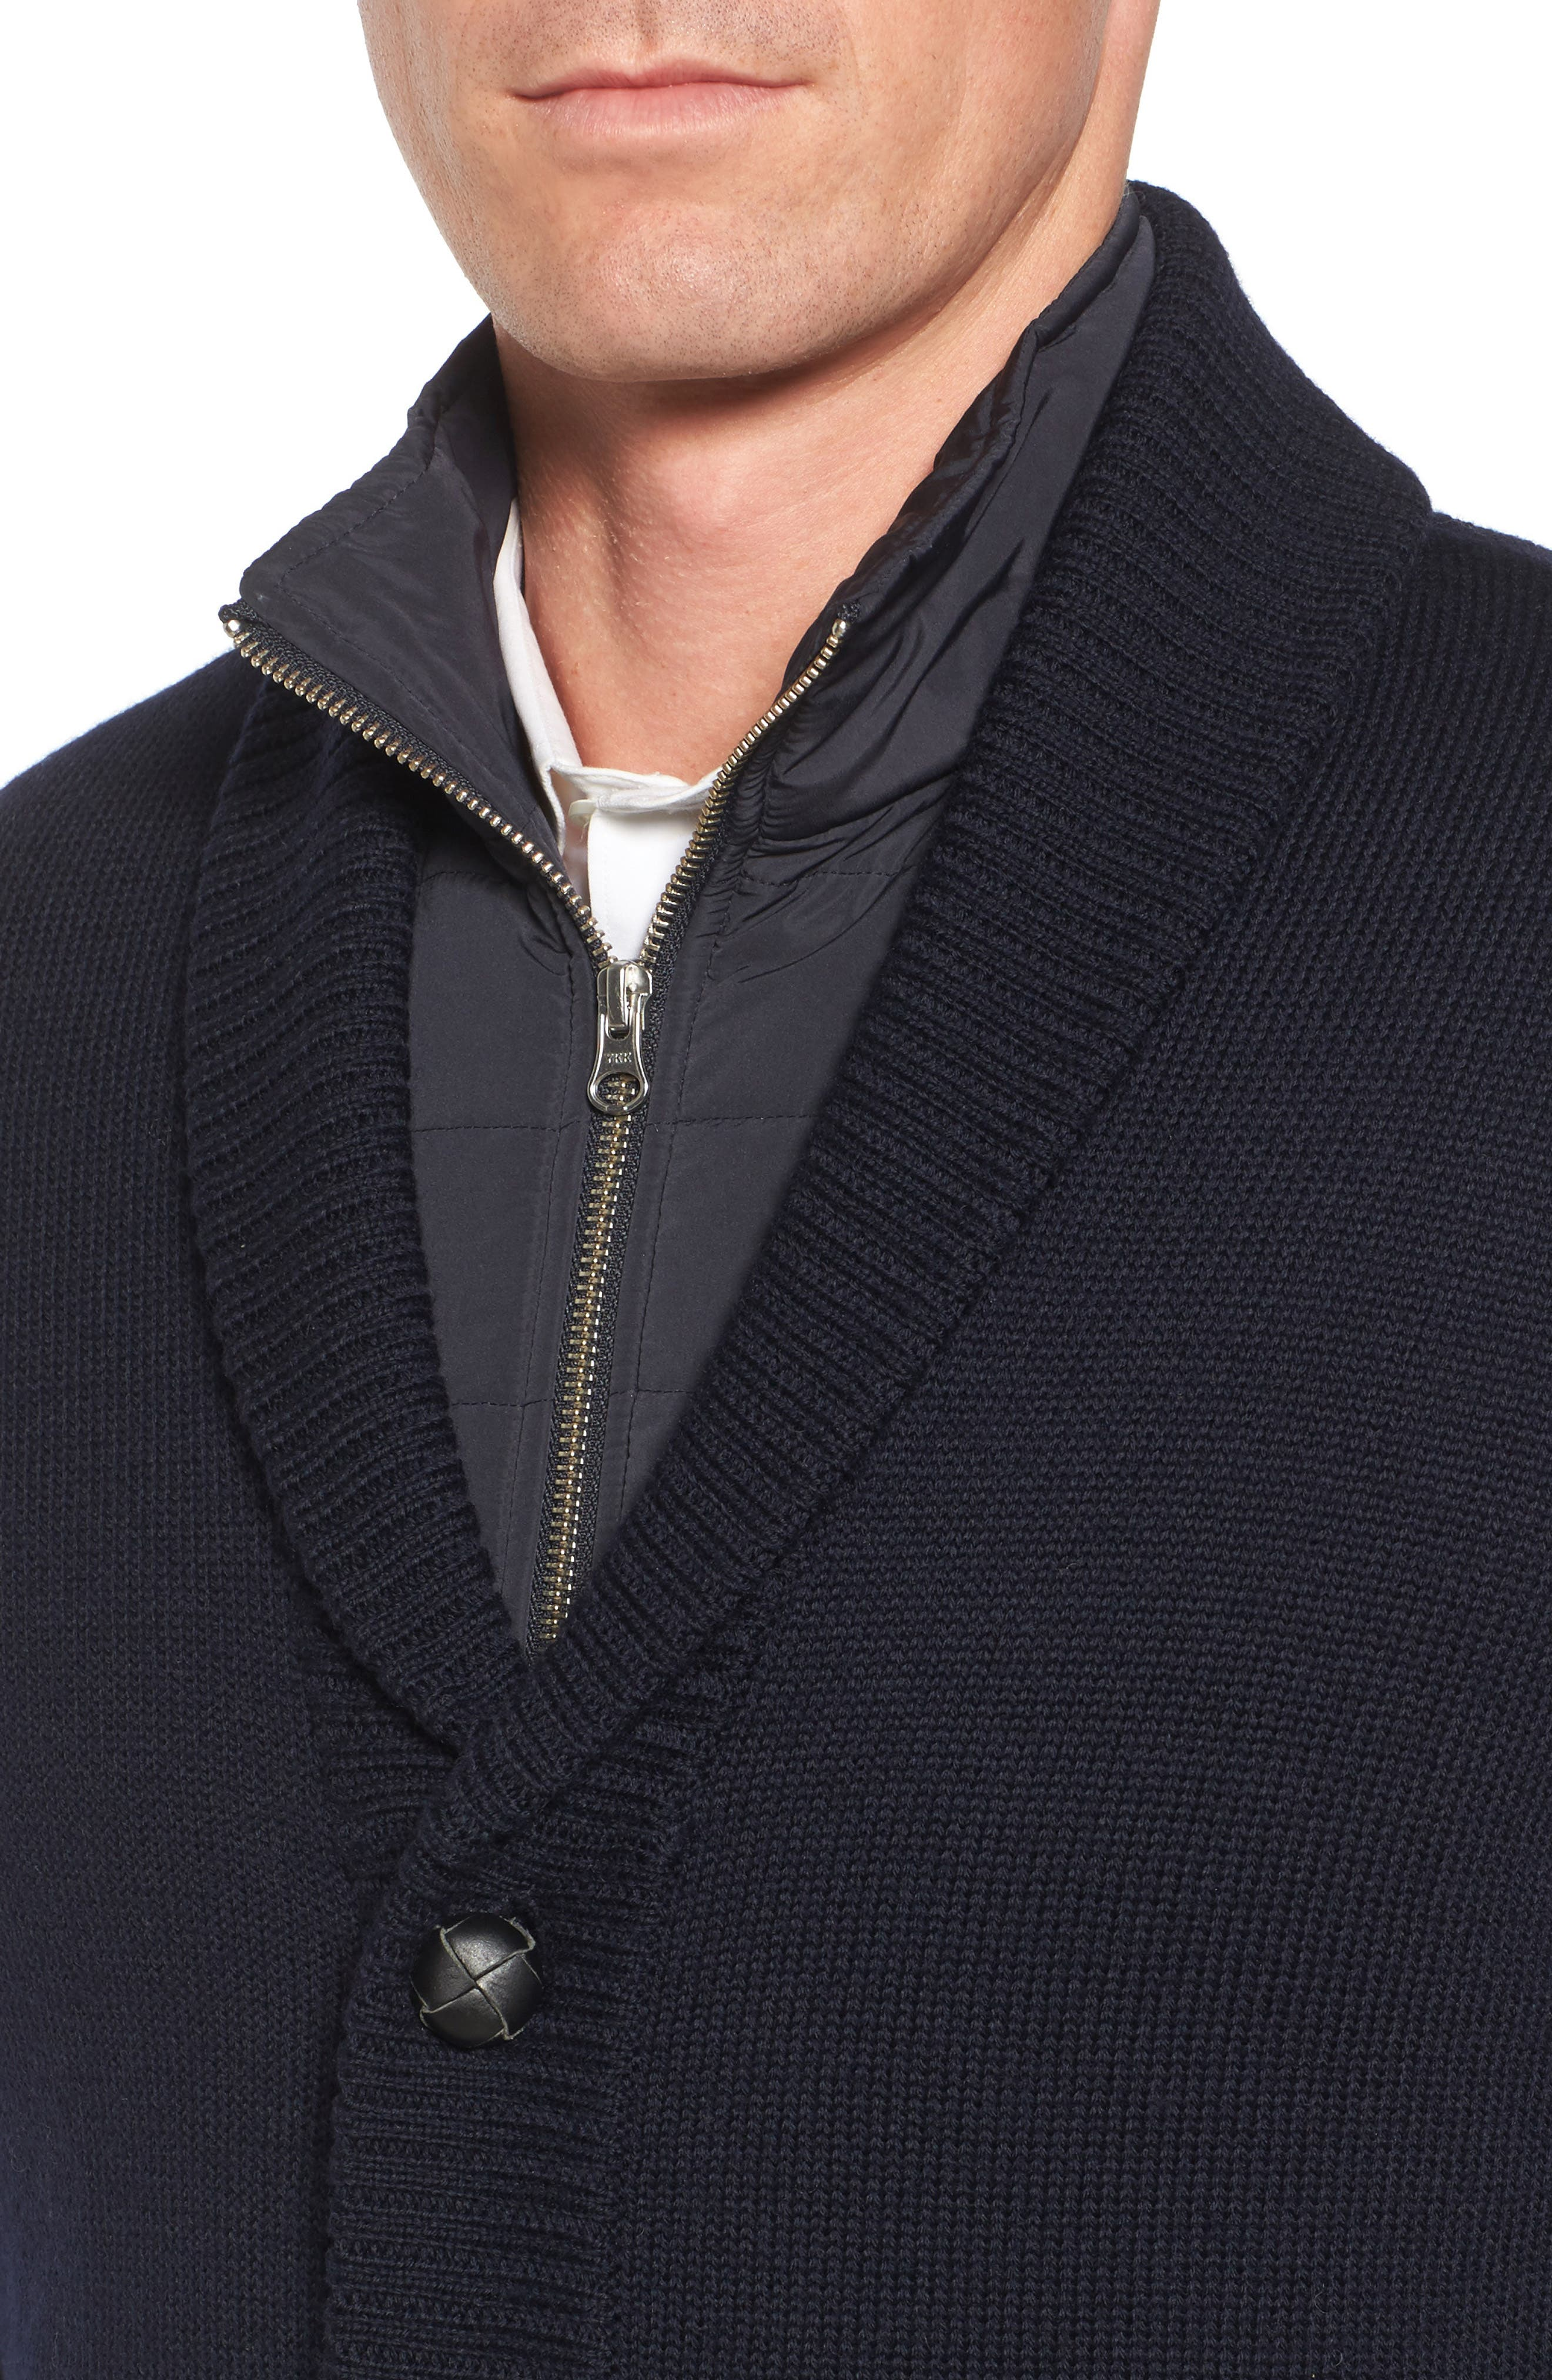 Wool Cardigan with Bib,                             Alternate thumbnail 4, color,                             410